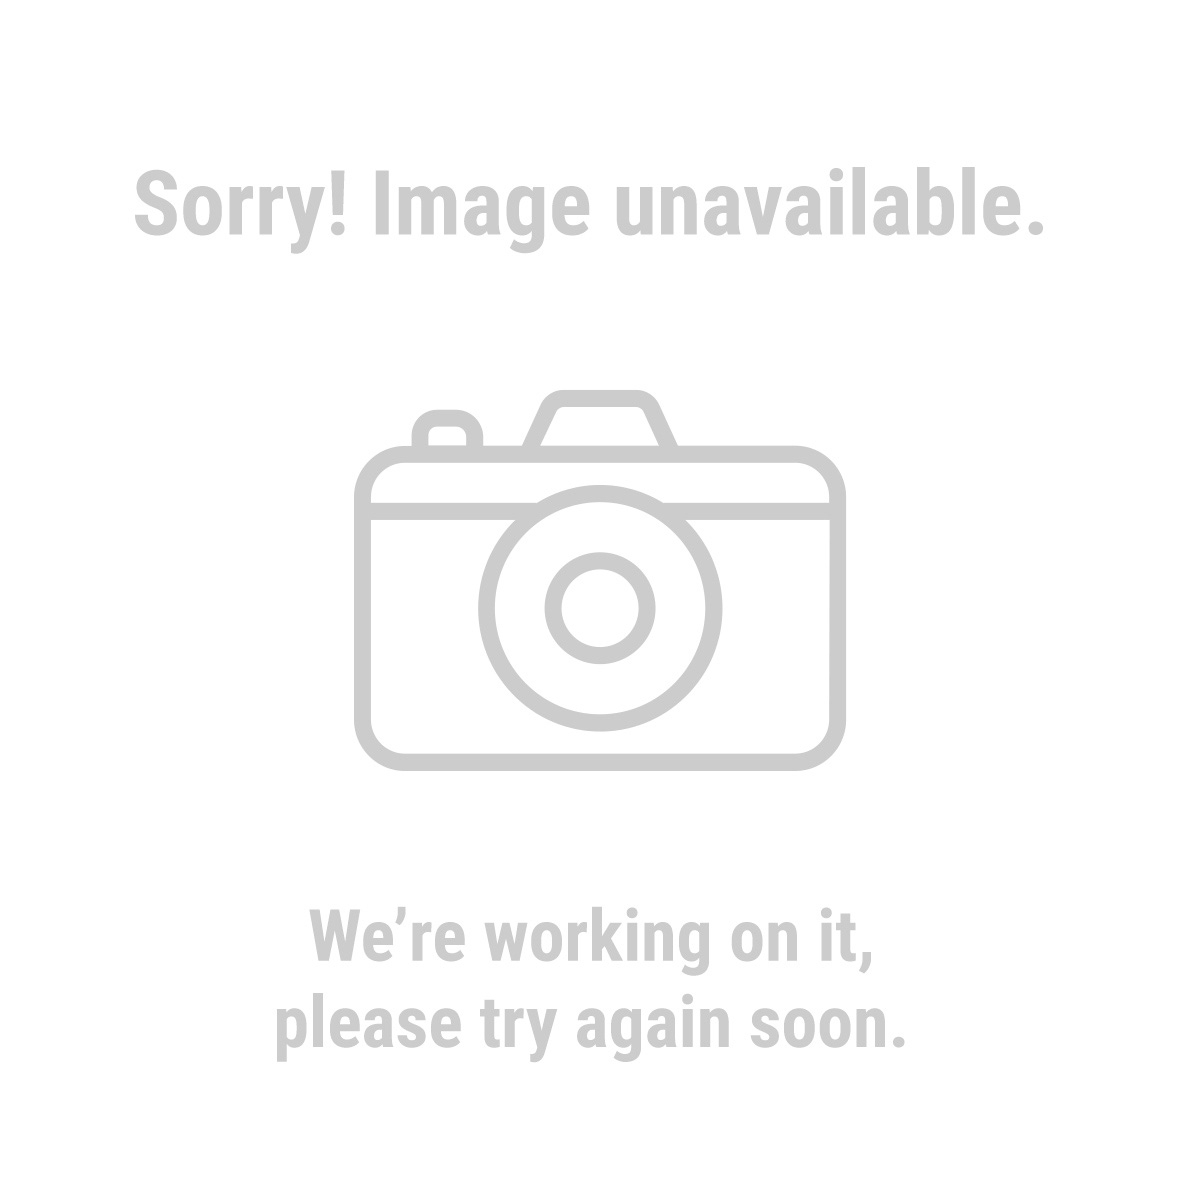 Chicago Electric Welding Systems 67854 Auto Darkening Welding Helmet with Racing Stripe Design